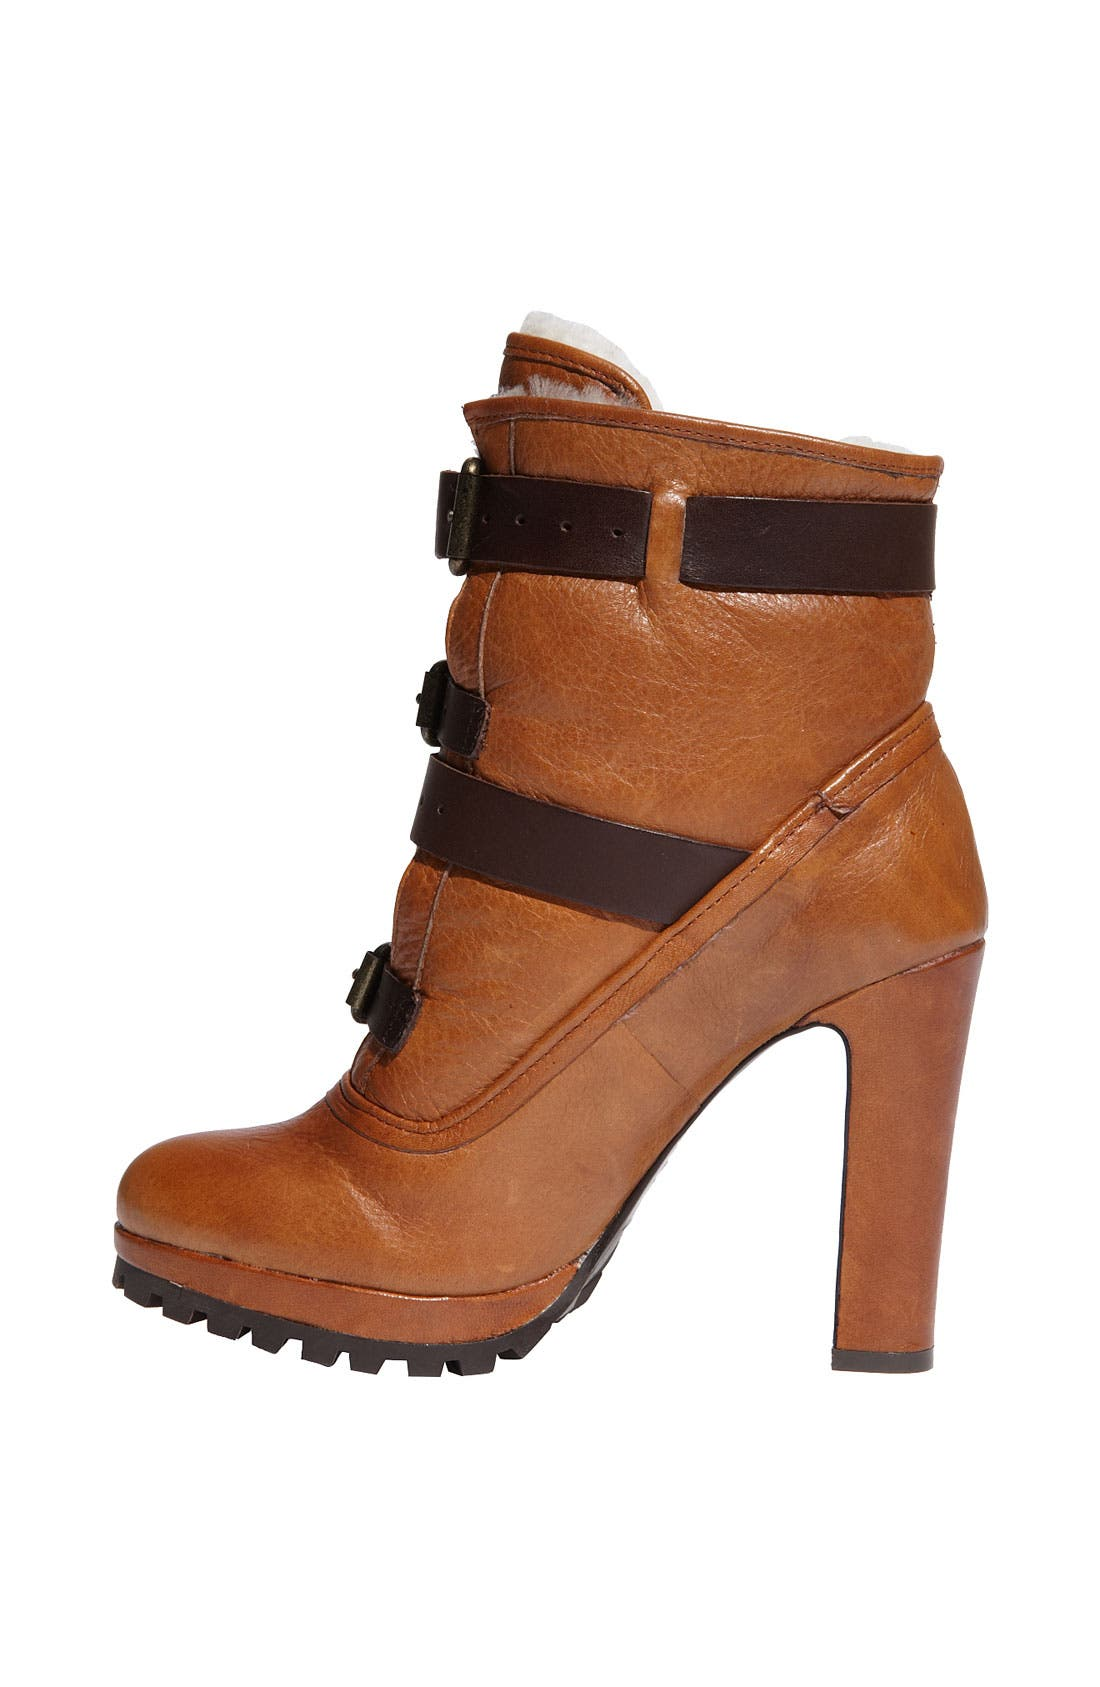 'Josh' Ankle Boot,                             Alternate thumbnail 2, color,                             Natural Leather